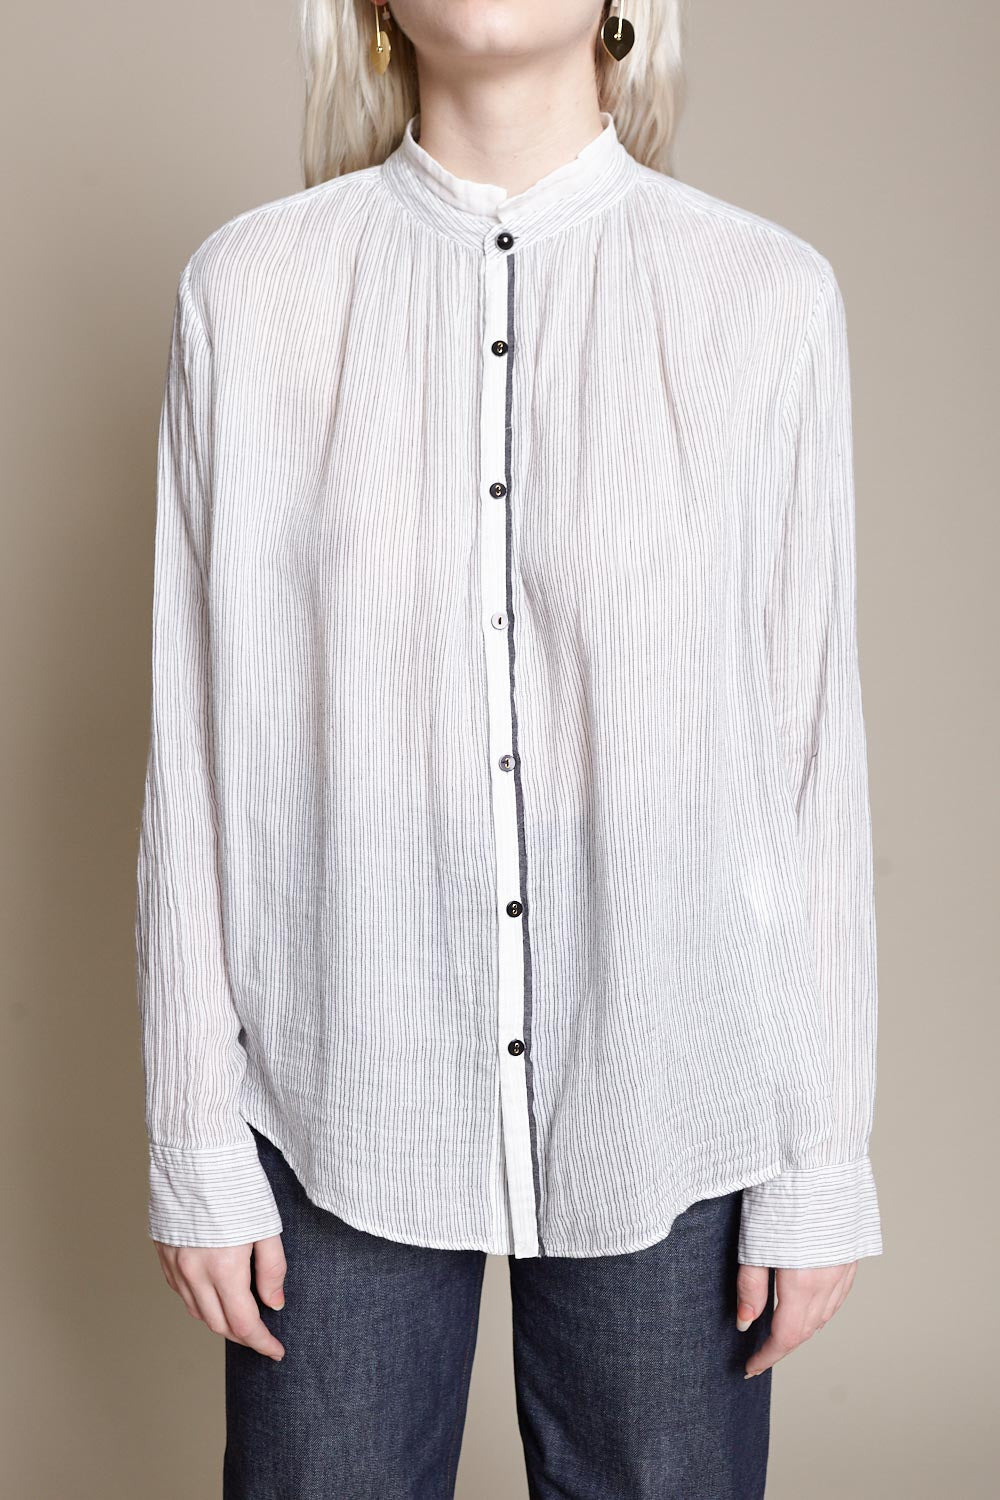 pas de calais Blouse in White - Vert & Vogue